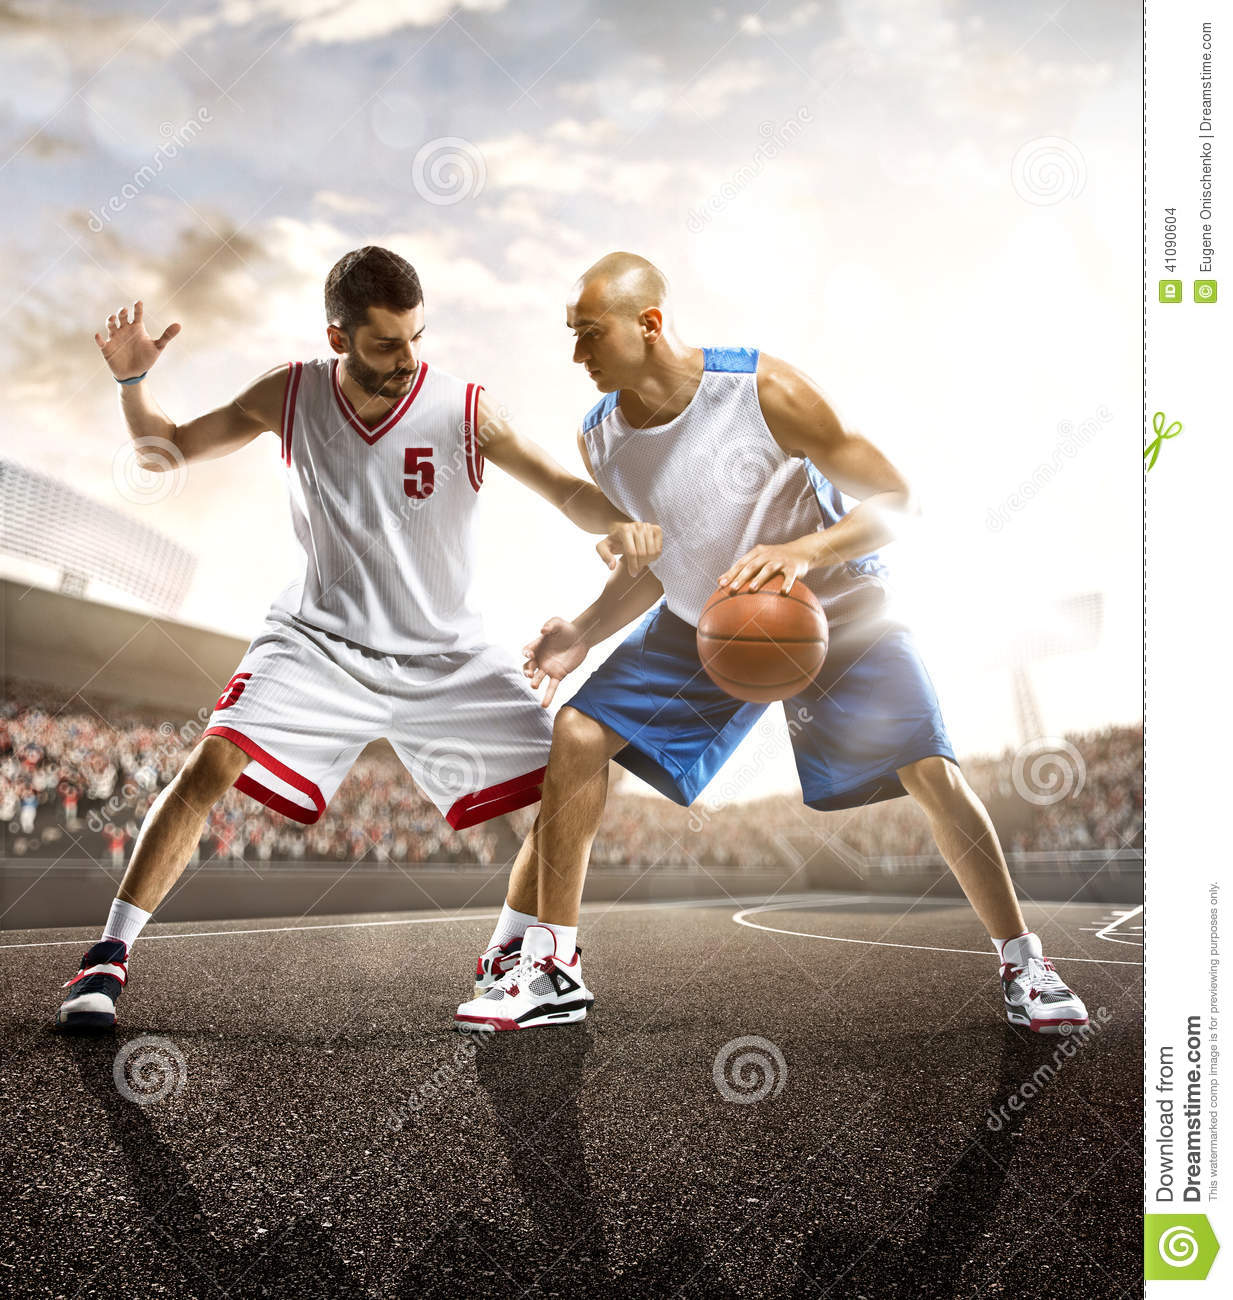 Basketball Player In Action Stock Photo - Image: 41090604